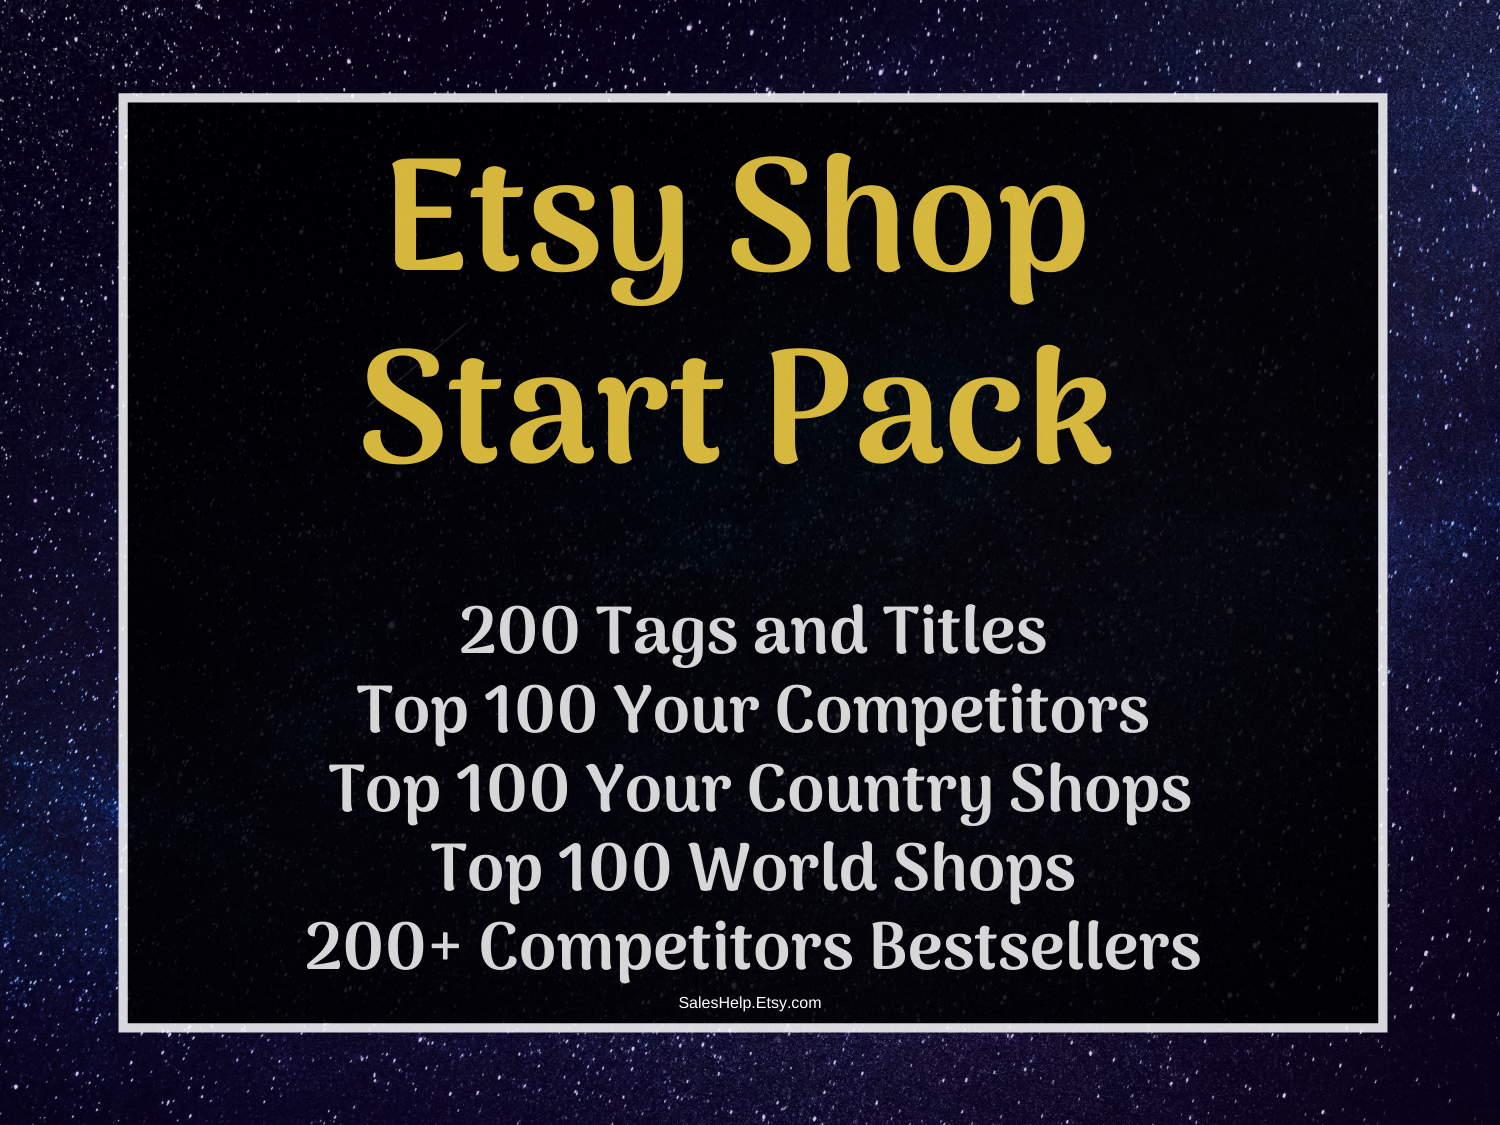 Etsy Shop Start Pack: Titles and Tags, Top Competitors, Top Your Country Shops, Top Sold Items.